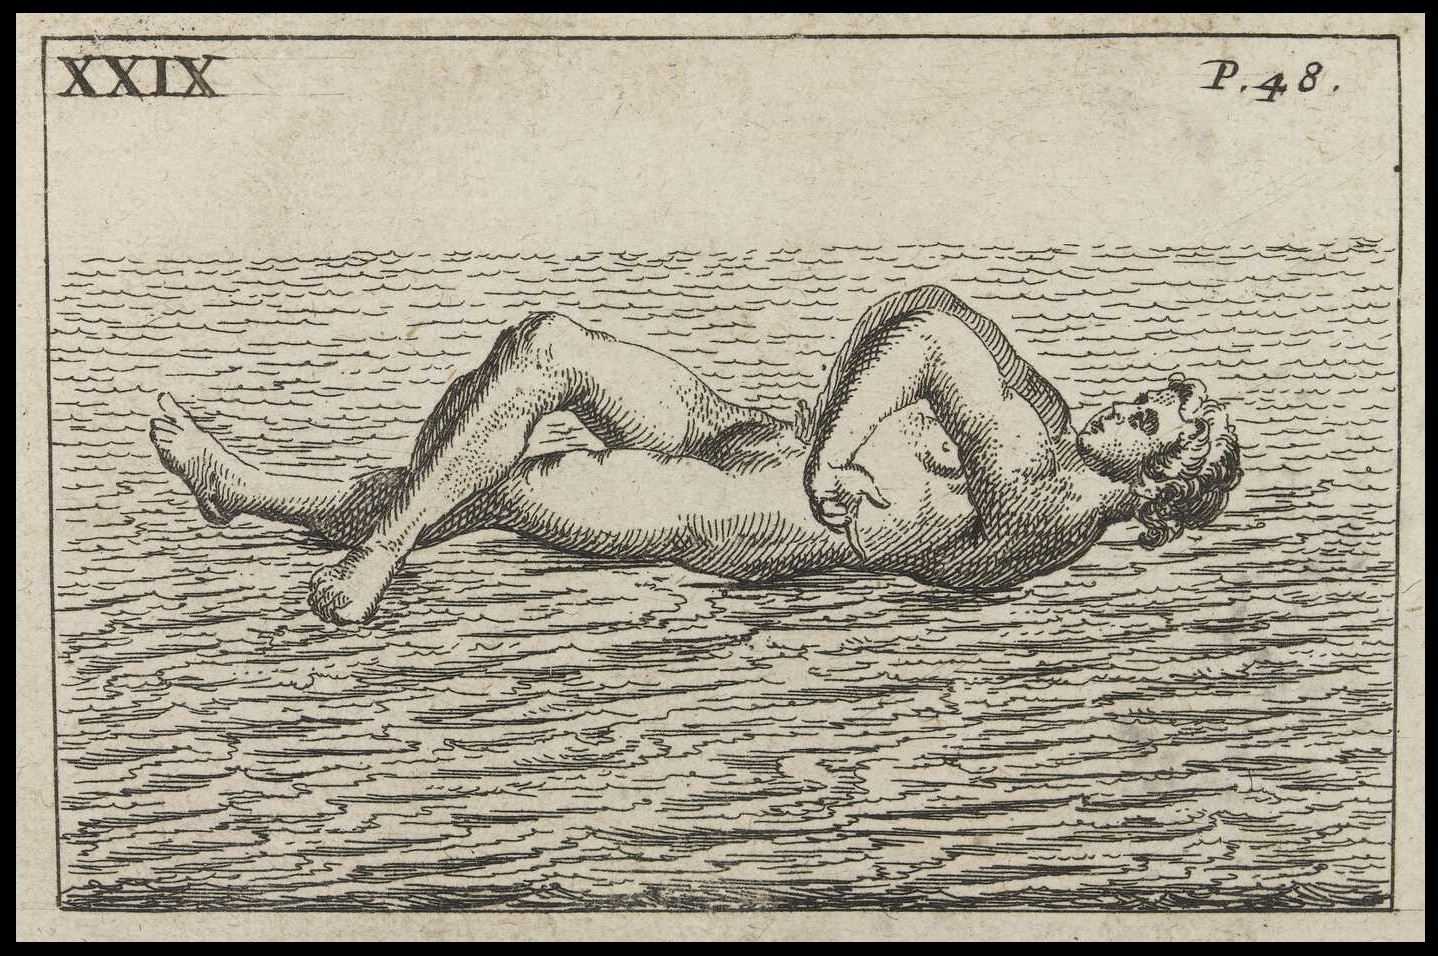 awkward swimmer pose in early modern swimming treatise